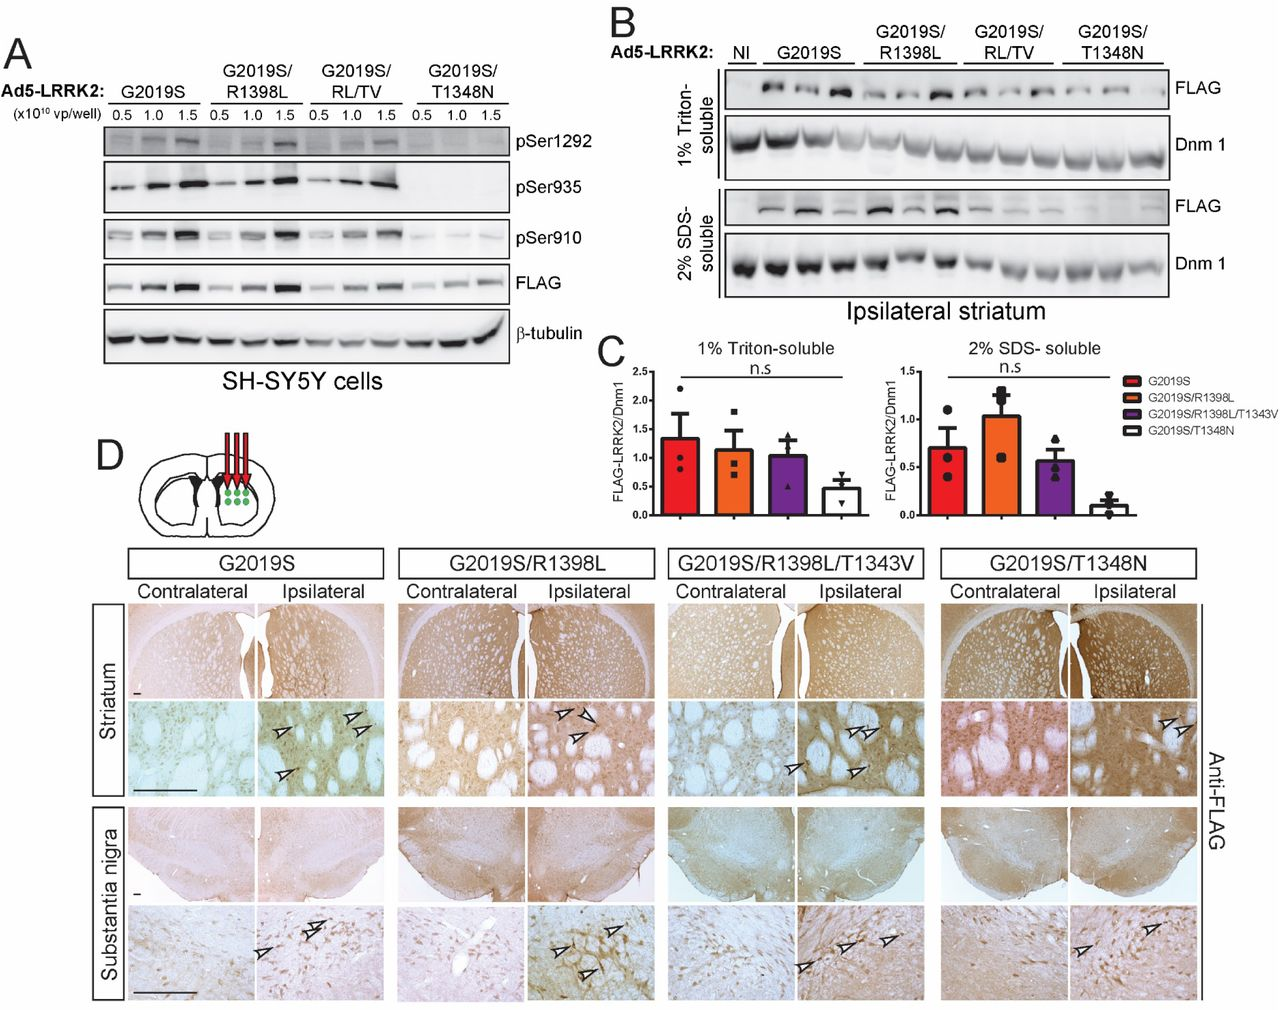 Evaluation of Ad5-LRRK2-G2019S vectors with genetic disruption of GTP-binding or GTP hydrolysis in cells and rat brain. A) Validation of high-titer Ad5-LRRK2 (G2019S, G2019S/R1398L, G2019S/R1398L/T1343V or G2019S/T1348N) vectors and LRRK2 phosphorylation in SH-SY5Y cells. Cells were transduced with increasing viral particles (vp) of each Ad5-LRRK2 vector (0.5, 1 or 5.0 x 10 10 vp/well). Western blot analysis of cell extracts with FLAG antibody (transduced human LRRK2) or antibodies to detect LRRK2 autophosphorylation (pSer1292) or constitutive phosphorylation (pSer935, pSer910) sites to detect a titer-dependent increase in human LRRK2 levels/activity. β-tubulin was used as protein loading control. B) Ipsilateral striatum was harvested at 10 days after unilateral intrastriatal delivery of Ad5-LRRK2 vectors and subjected to sequential detergent extraction in 1% Triton X100 and 2% SDS. Striatal fractions were analyzed by Western blot analysis ( n = 3 animals/vector) indicating human LRRK2 variant levels (anti-FLAG antibody). Expression of dynamin-I (DnmI) was used as loading control. NI, non-injected striatum. C) Densitometric analysis of human LRRK2 variant levels (FLAG) normalized to Dnm 1 levels in each detergent fraction. Bars represent the mean ± SEM ( n = 3 animals/vector). n.s , non-significant by one-way ANOVA with Bonferroni's multiple comparisons. D) Ad5-LRRK2 (G2019S, G2019S/R1398L, G2019S/R1398L/T1343V, G2019S/T1348N) vectors were unilaterally delivered at six injection sites (1.5 x 10 10 vp/site, in 2.5 μl) in the rat striatum. Immunohistochemistry indicates human LRRK2 variant (anti-FLAG) expression in the ipsilateral striatum and substantia nigra that persists up to 42 days post-injection. Images indicate low and high magnification for each vector and brain region. Scale bars: 500 μm.